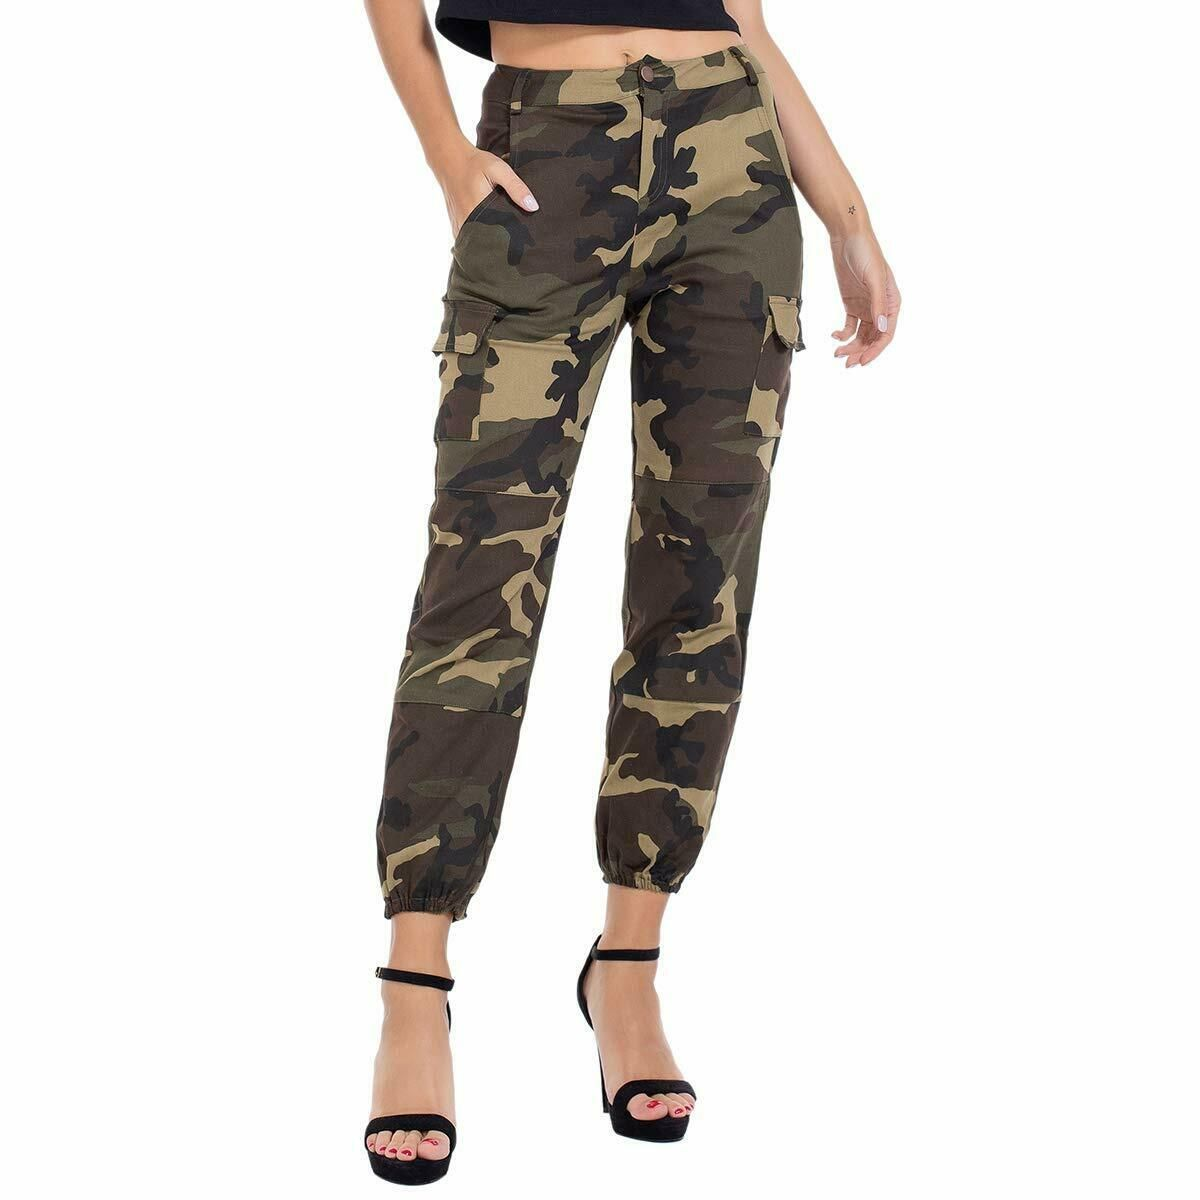 Women Camouflage Pants High Waist Stretch Leggings Sports Pencil Trousers Casual